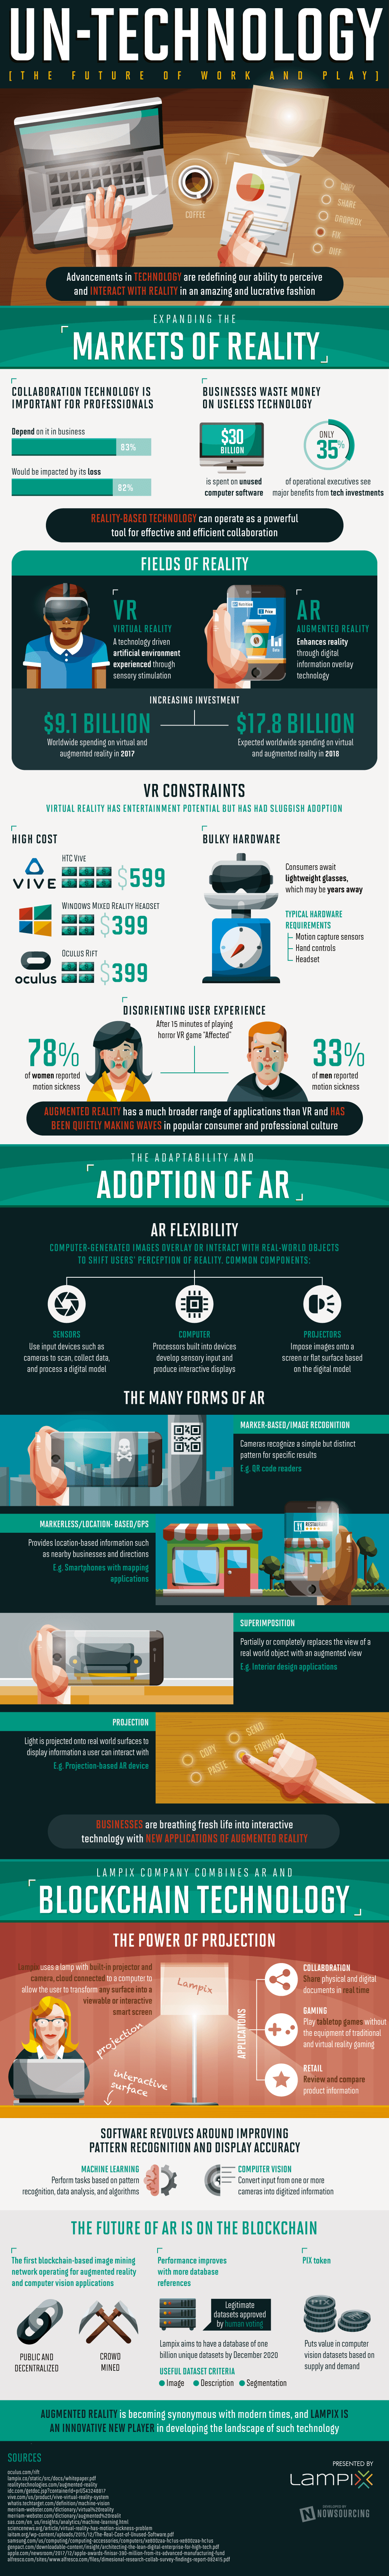 Augmented Reality Un-Technology